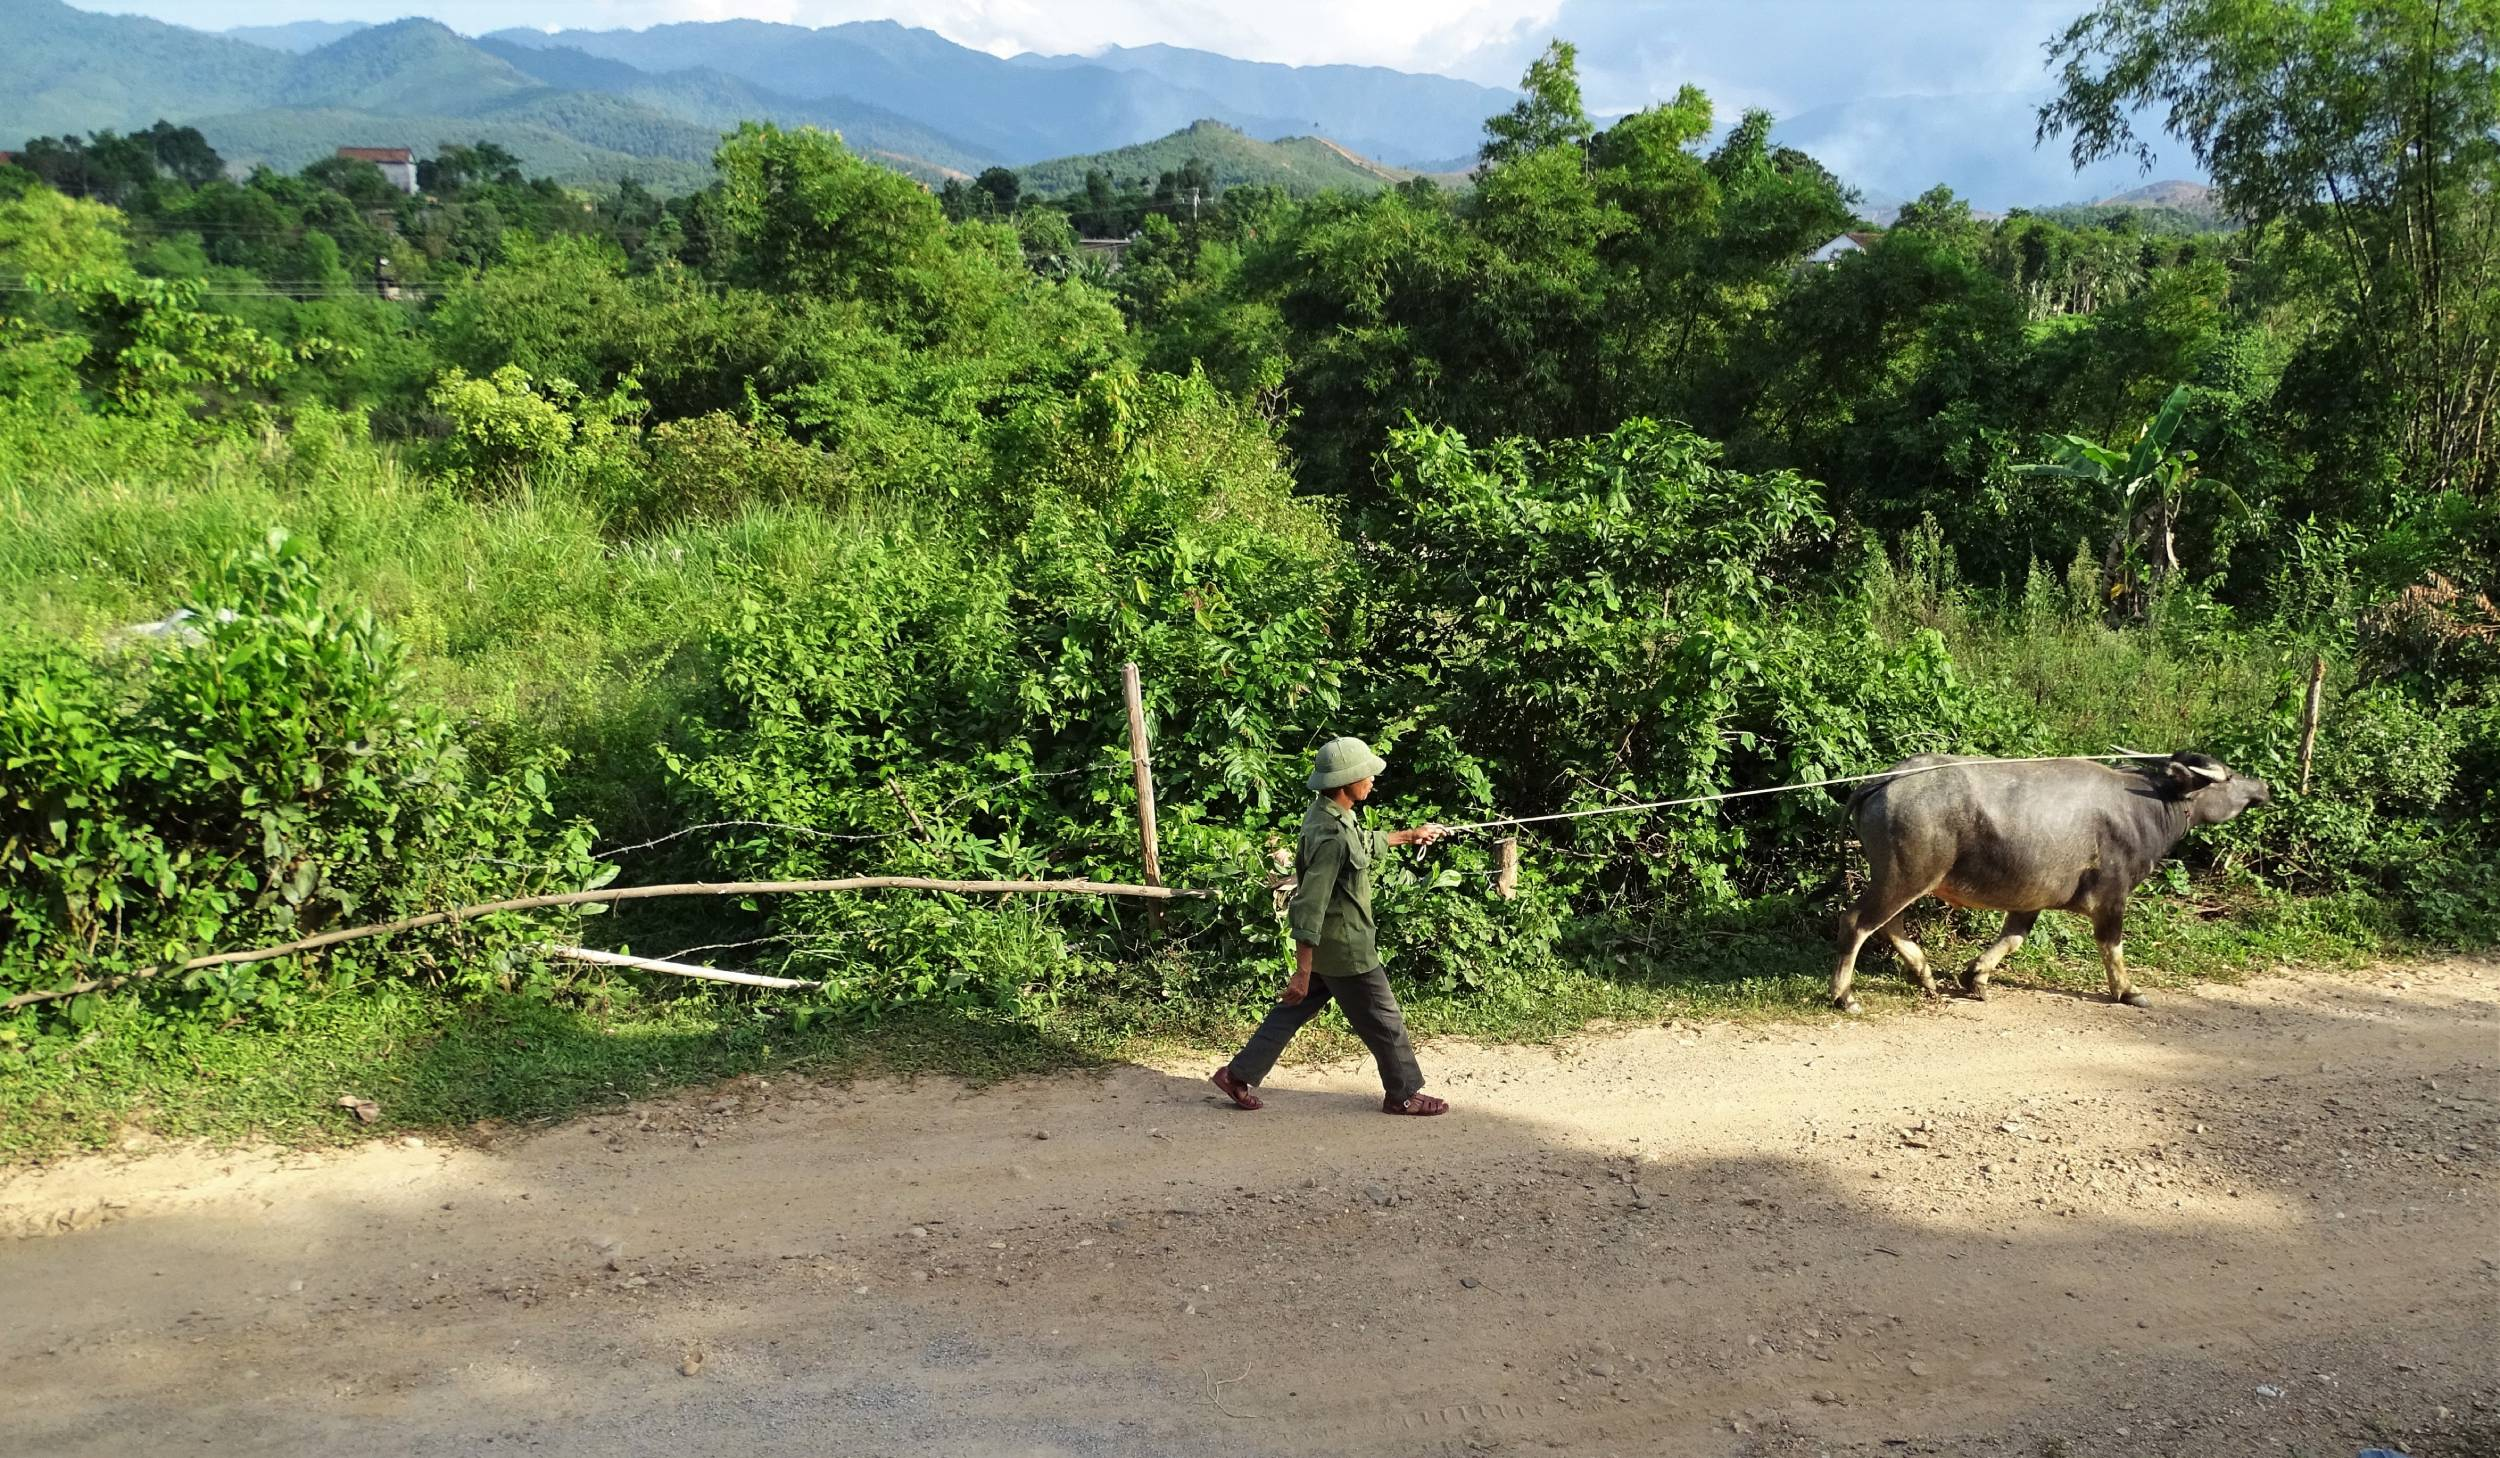 Vietnamese villager walking on a dirt road with a buffalo on a string